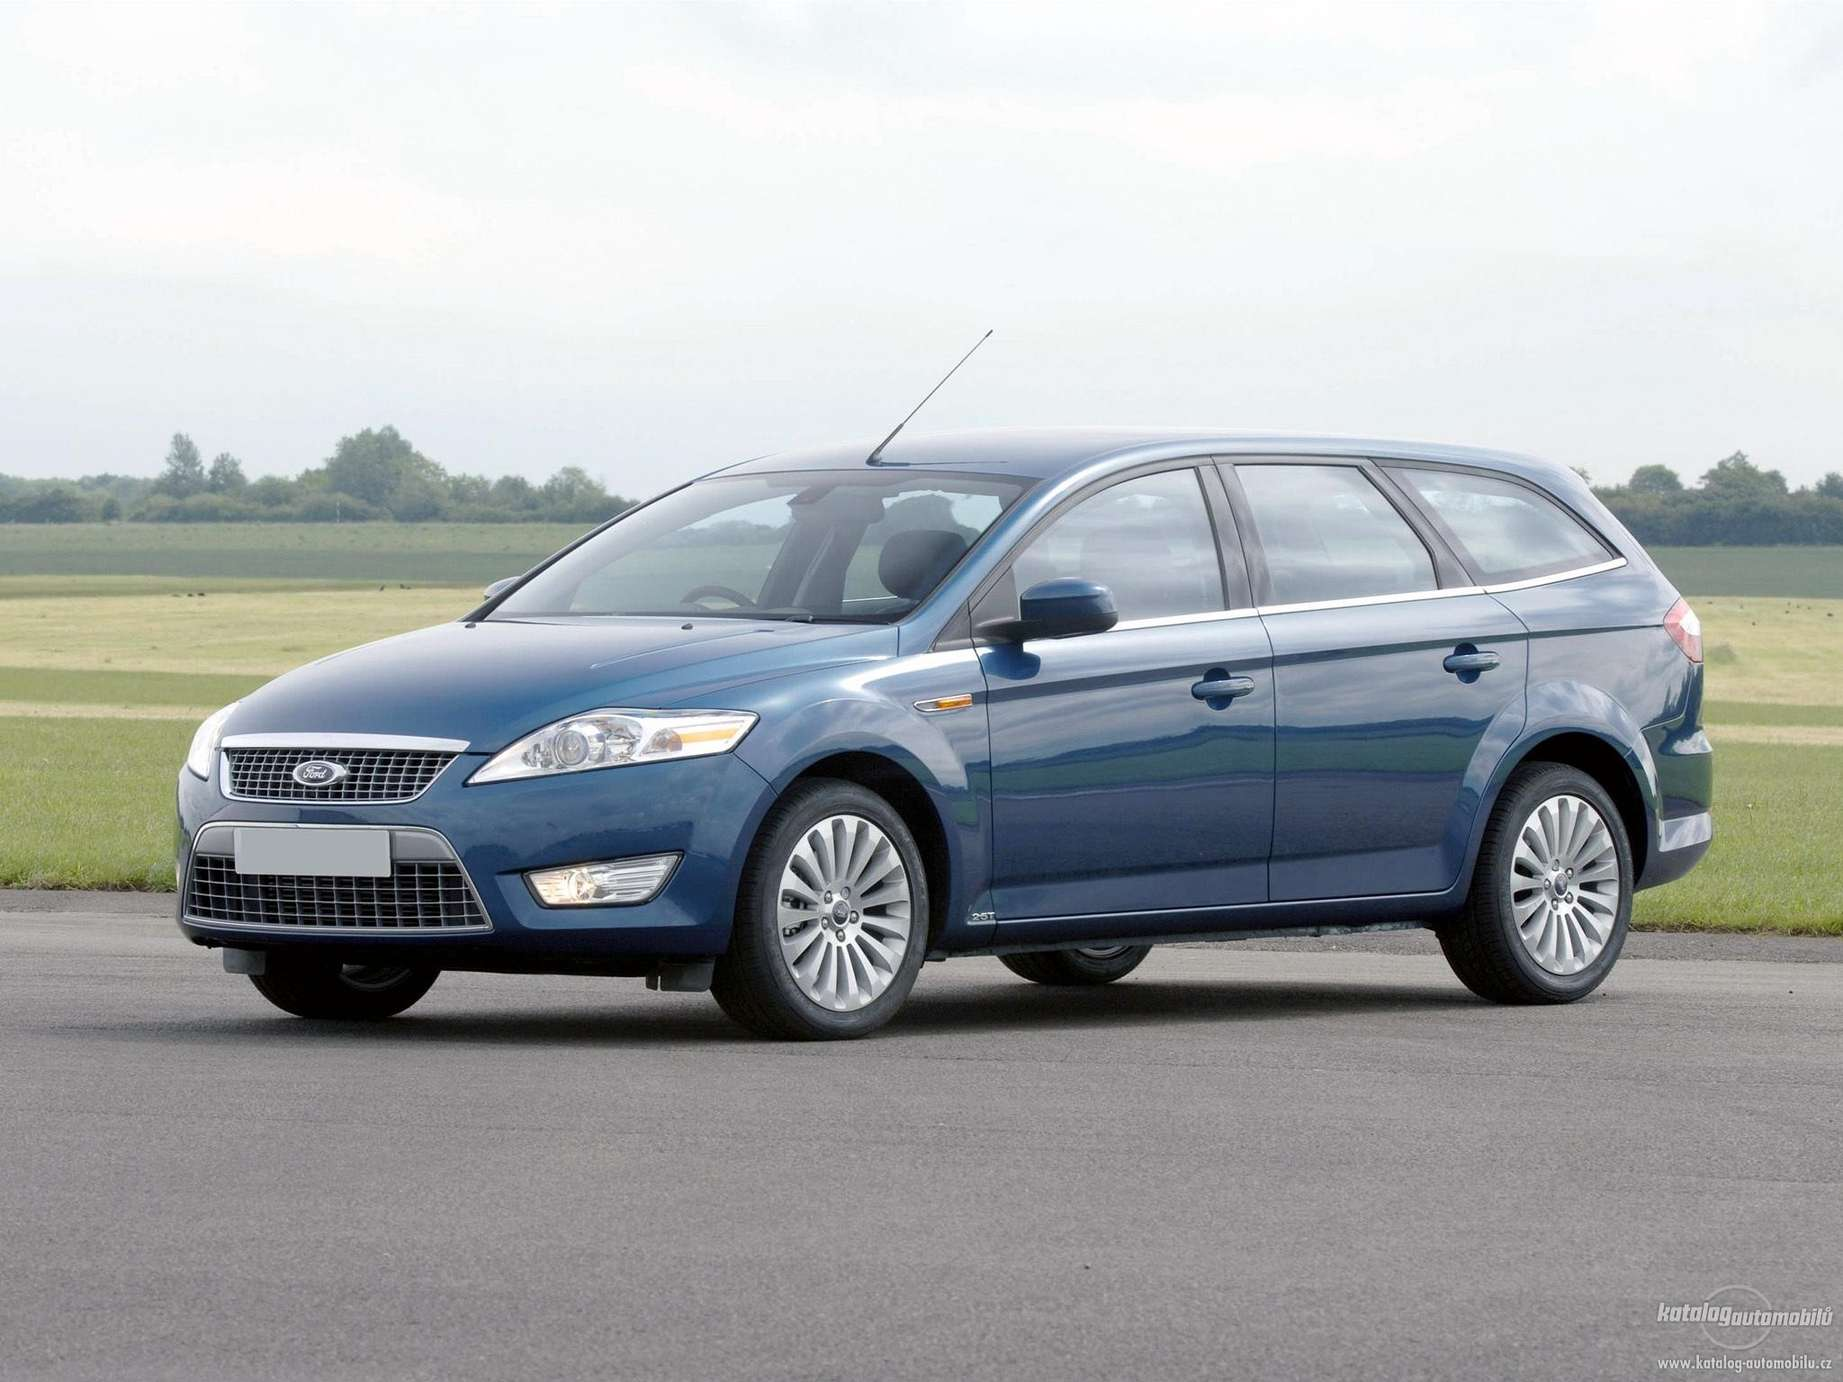 Ford Mondeo Turnier #8981952